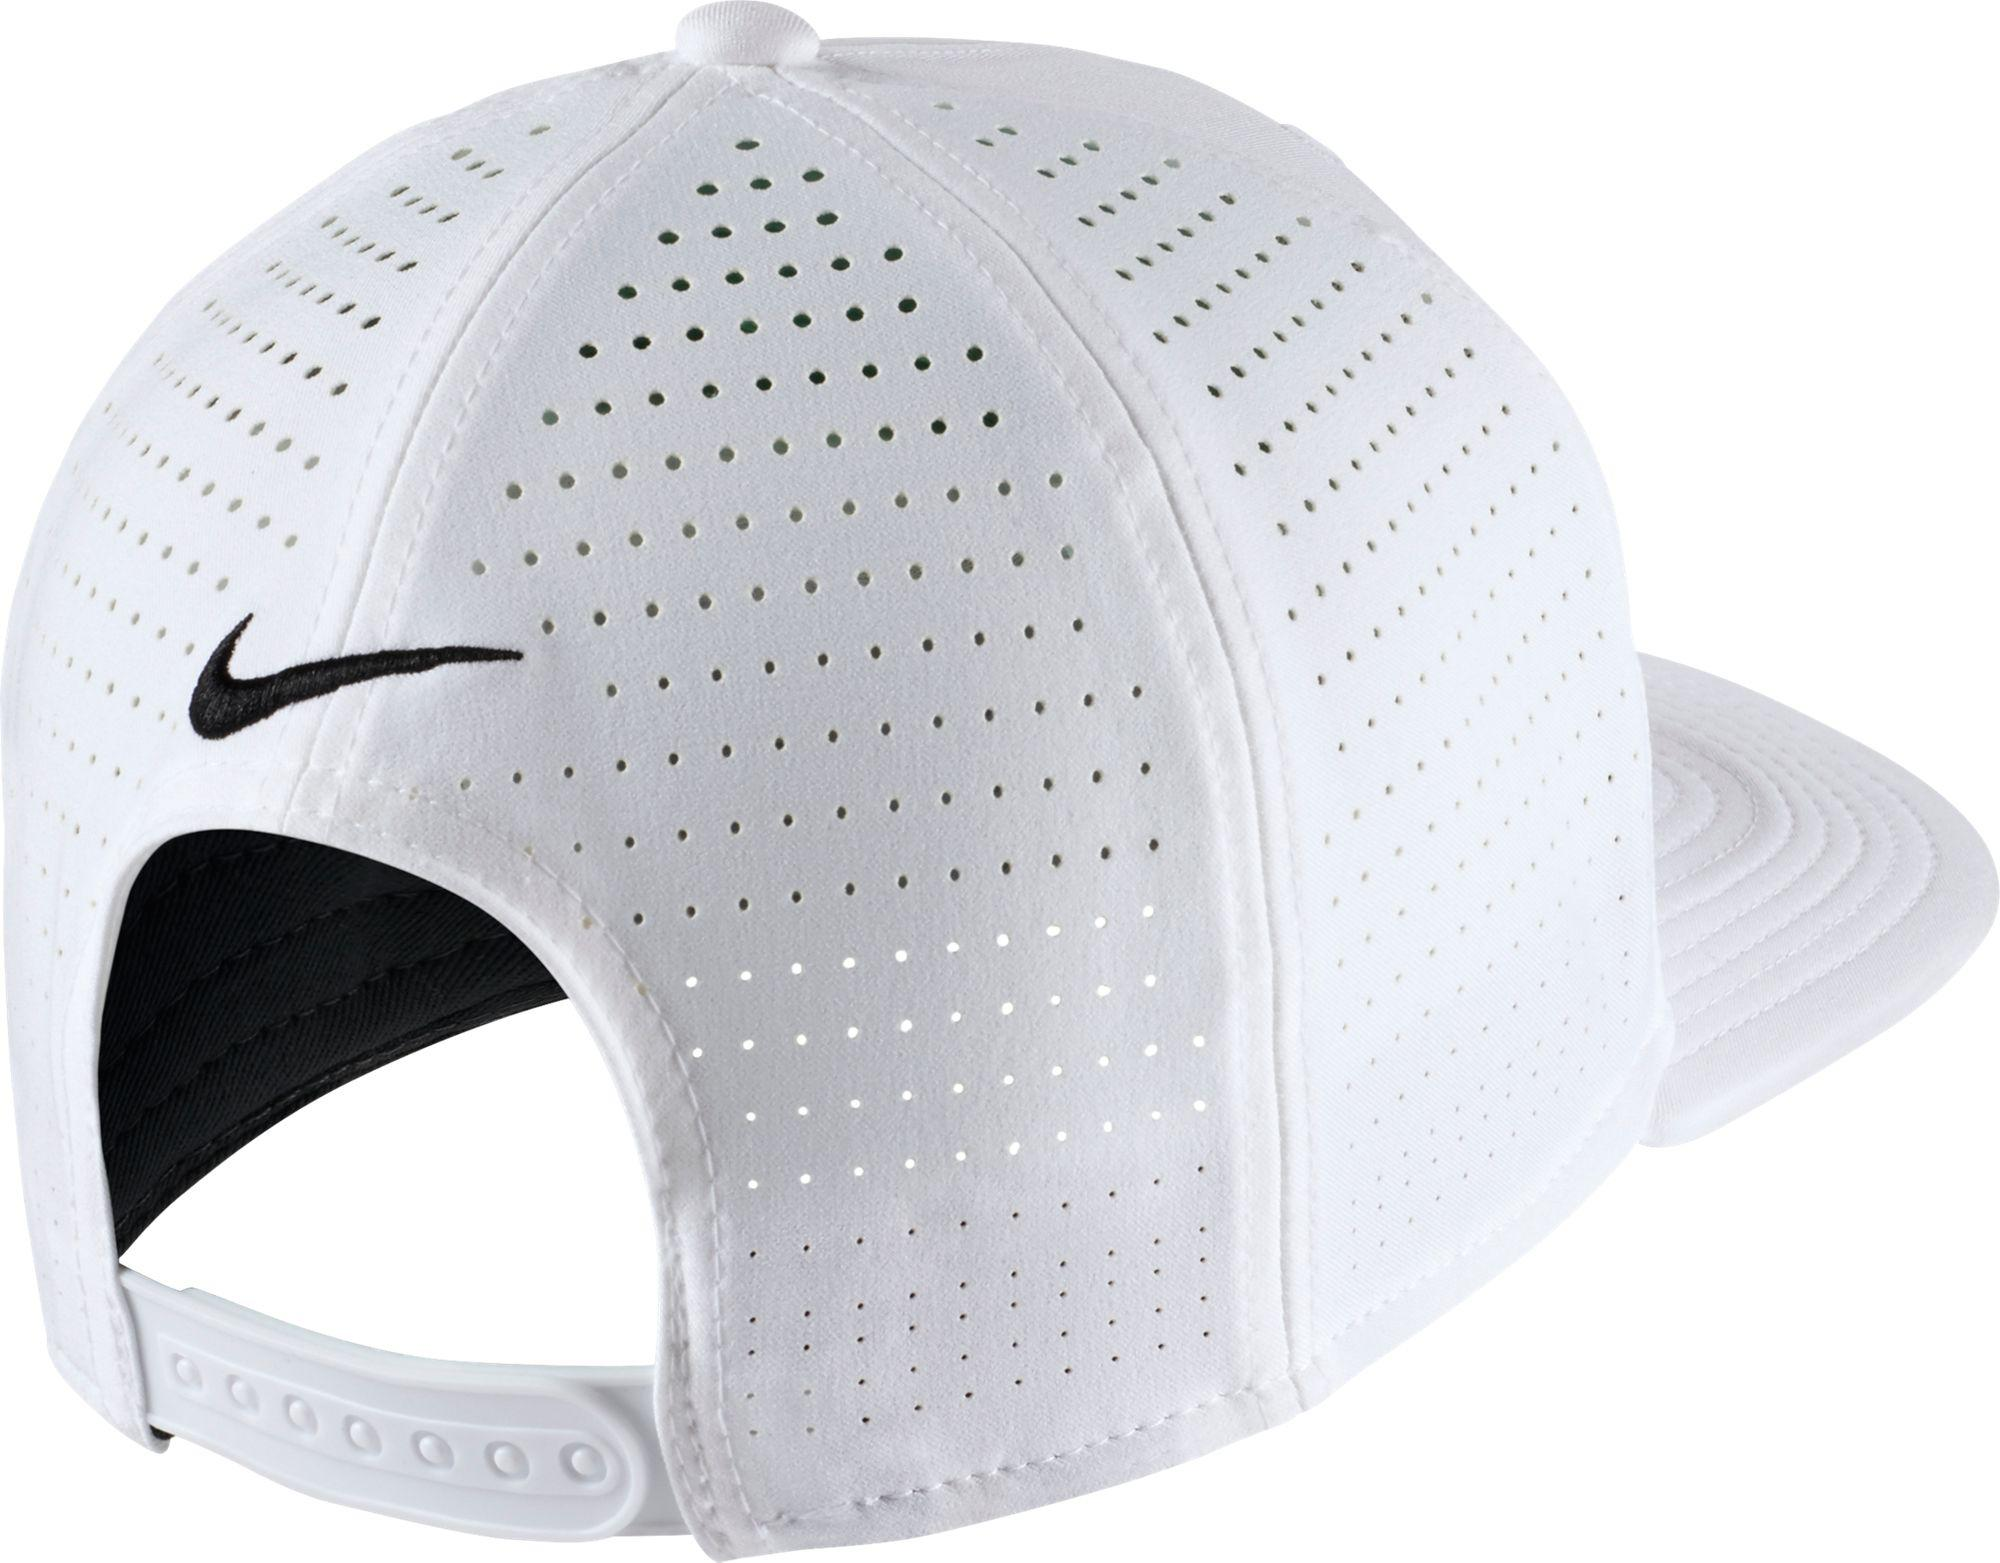 Lyst - Nike Ohio State Buckeyes Pro Perforated Golf Hat in White for Men b3f0ff349